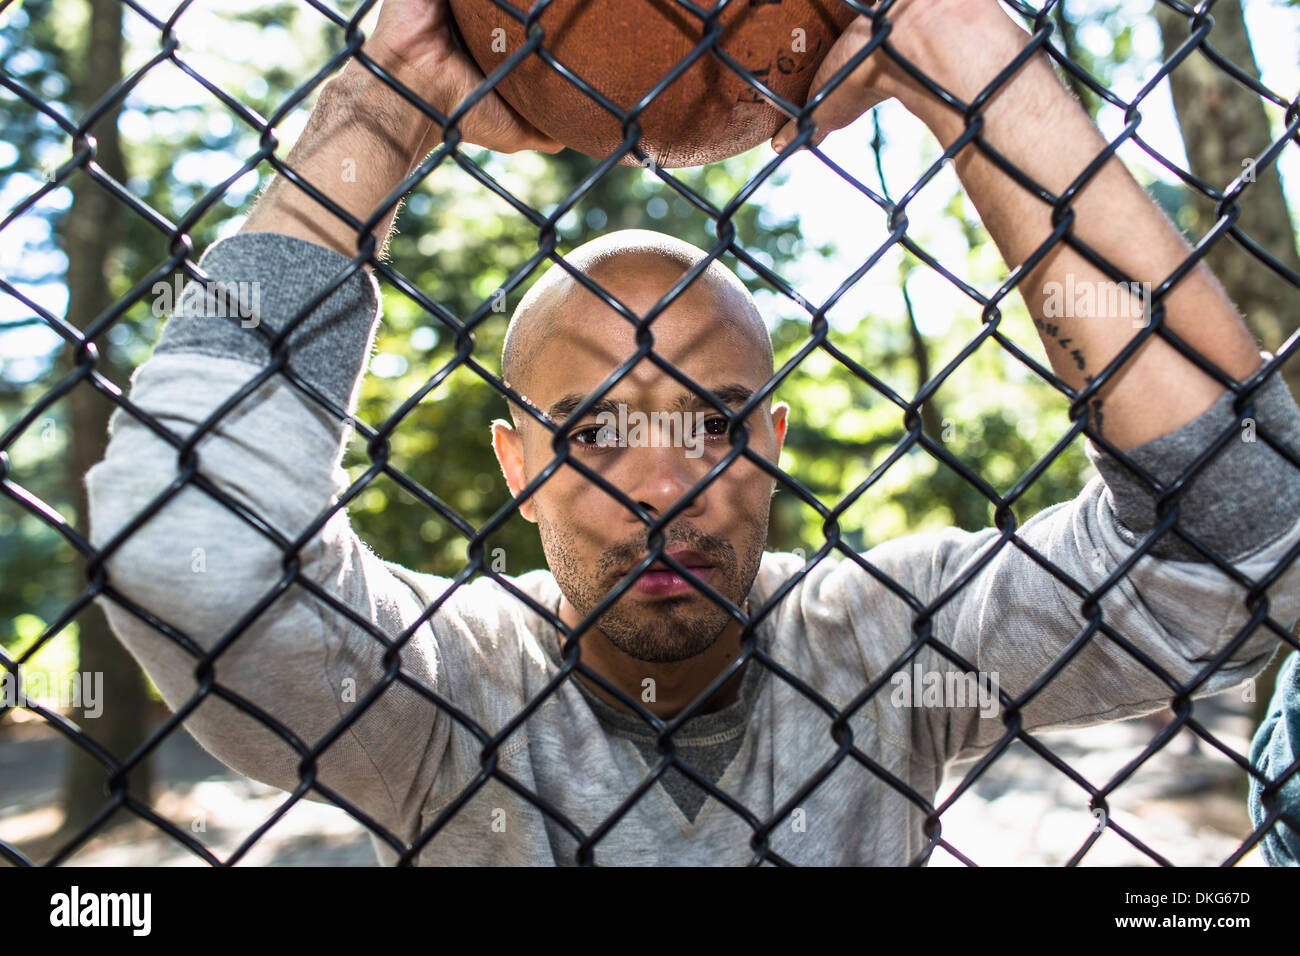 Portrait of young man holding basketball through wire fence - Stock Image